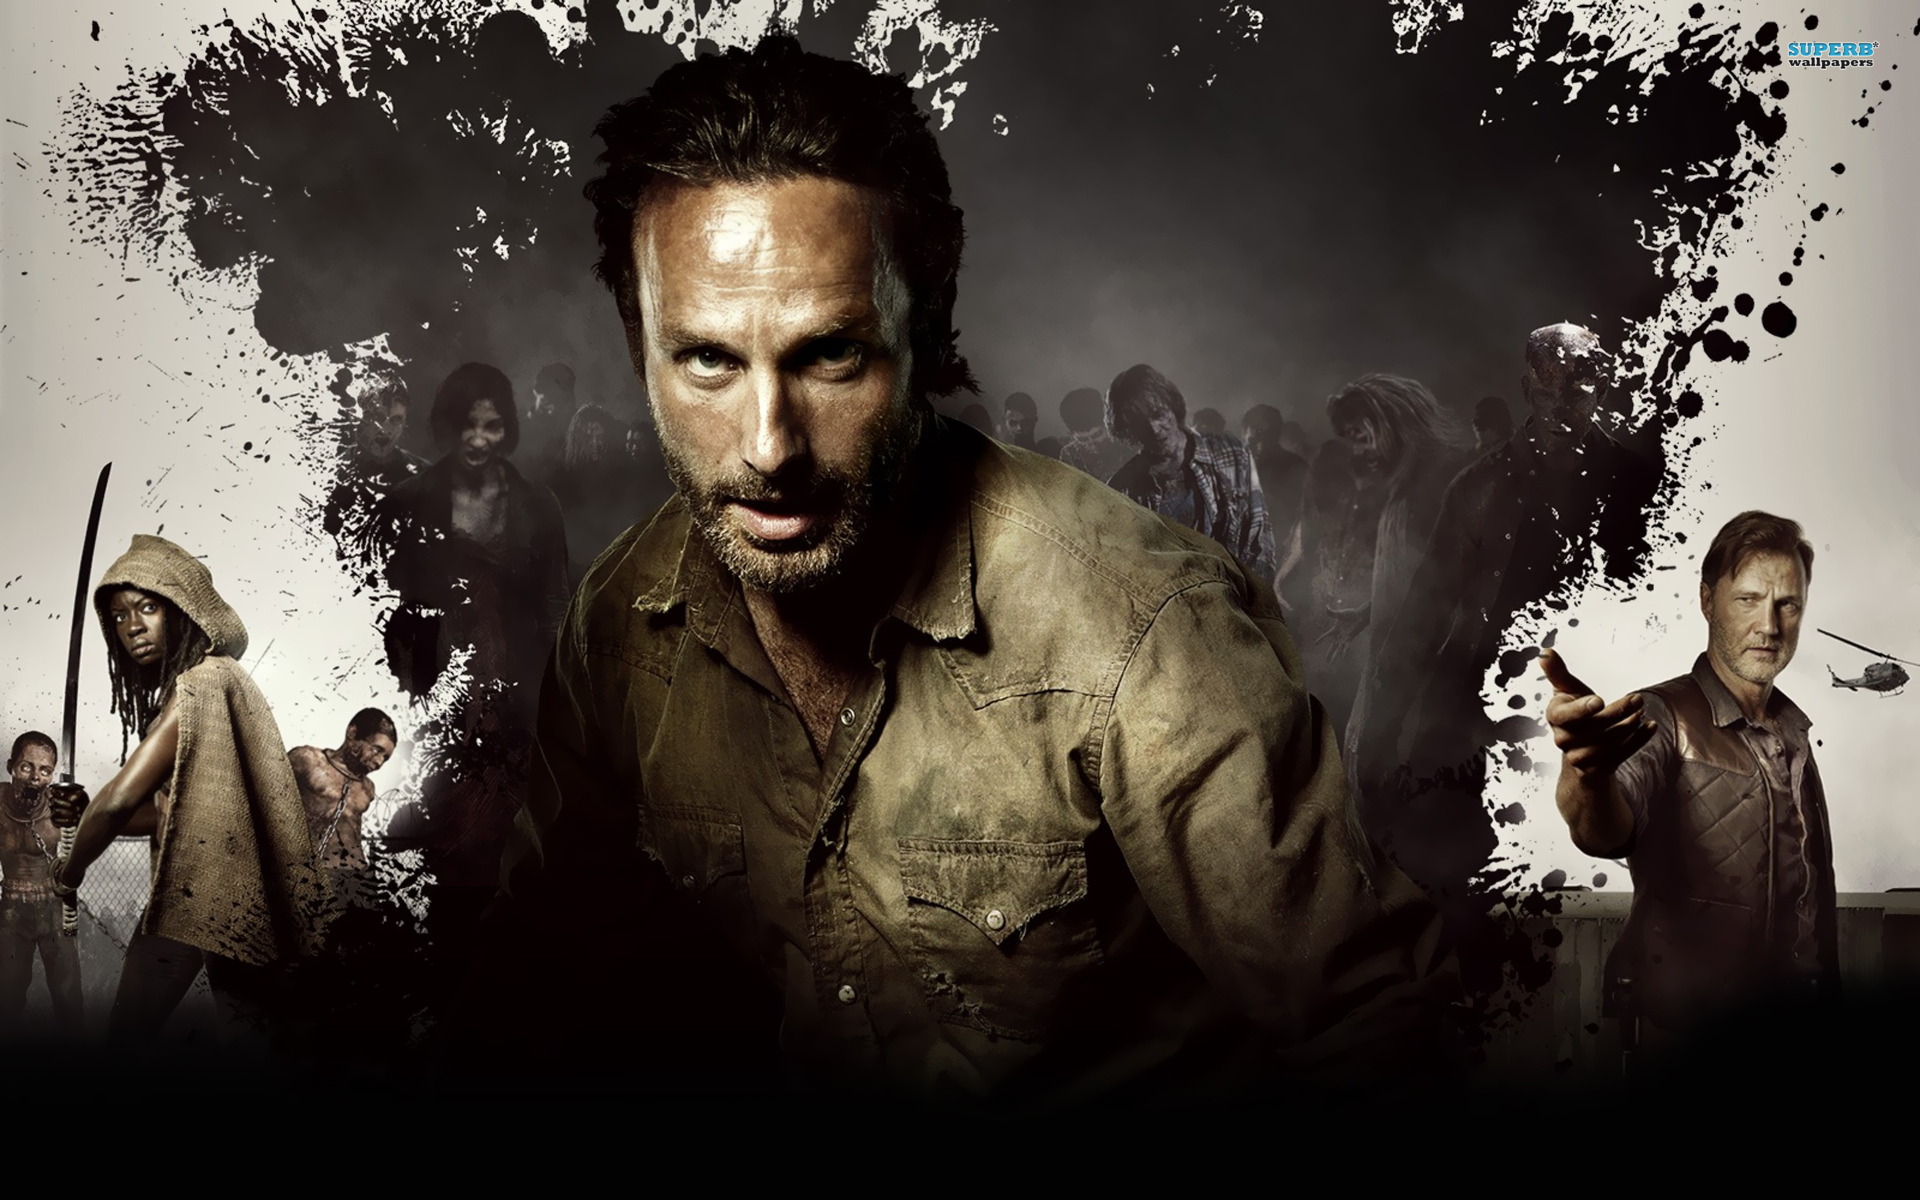 Free Download The Walking Dead 1920x1200 For Your Desktop